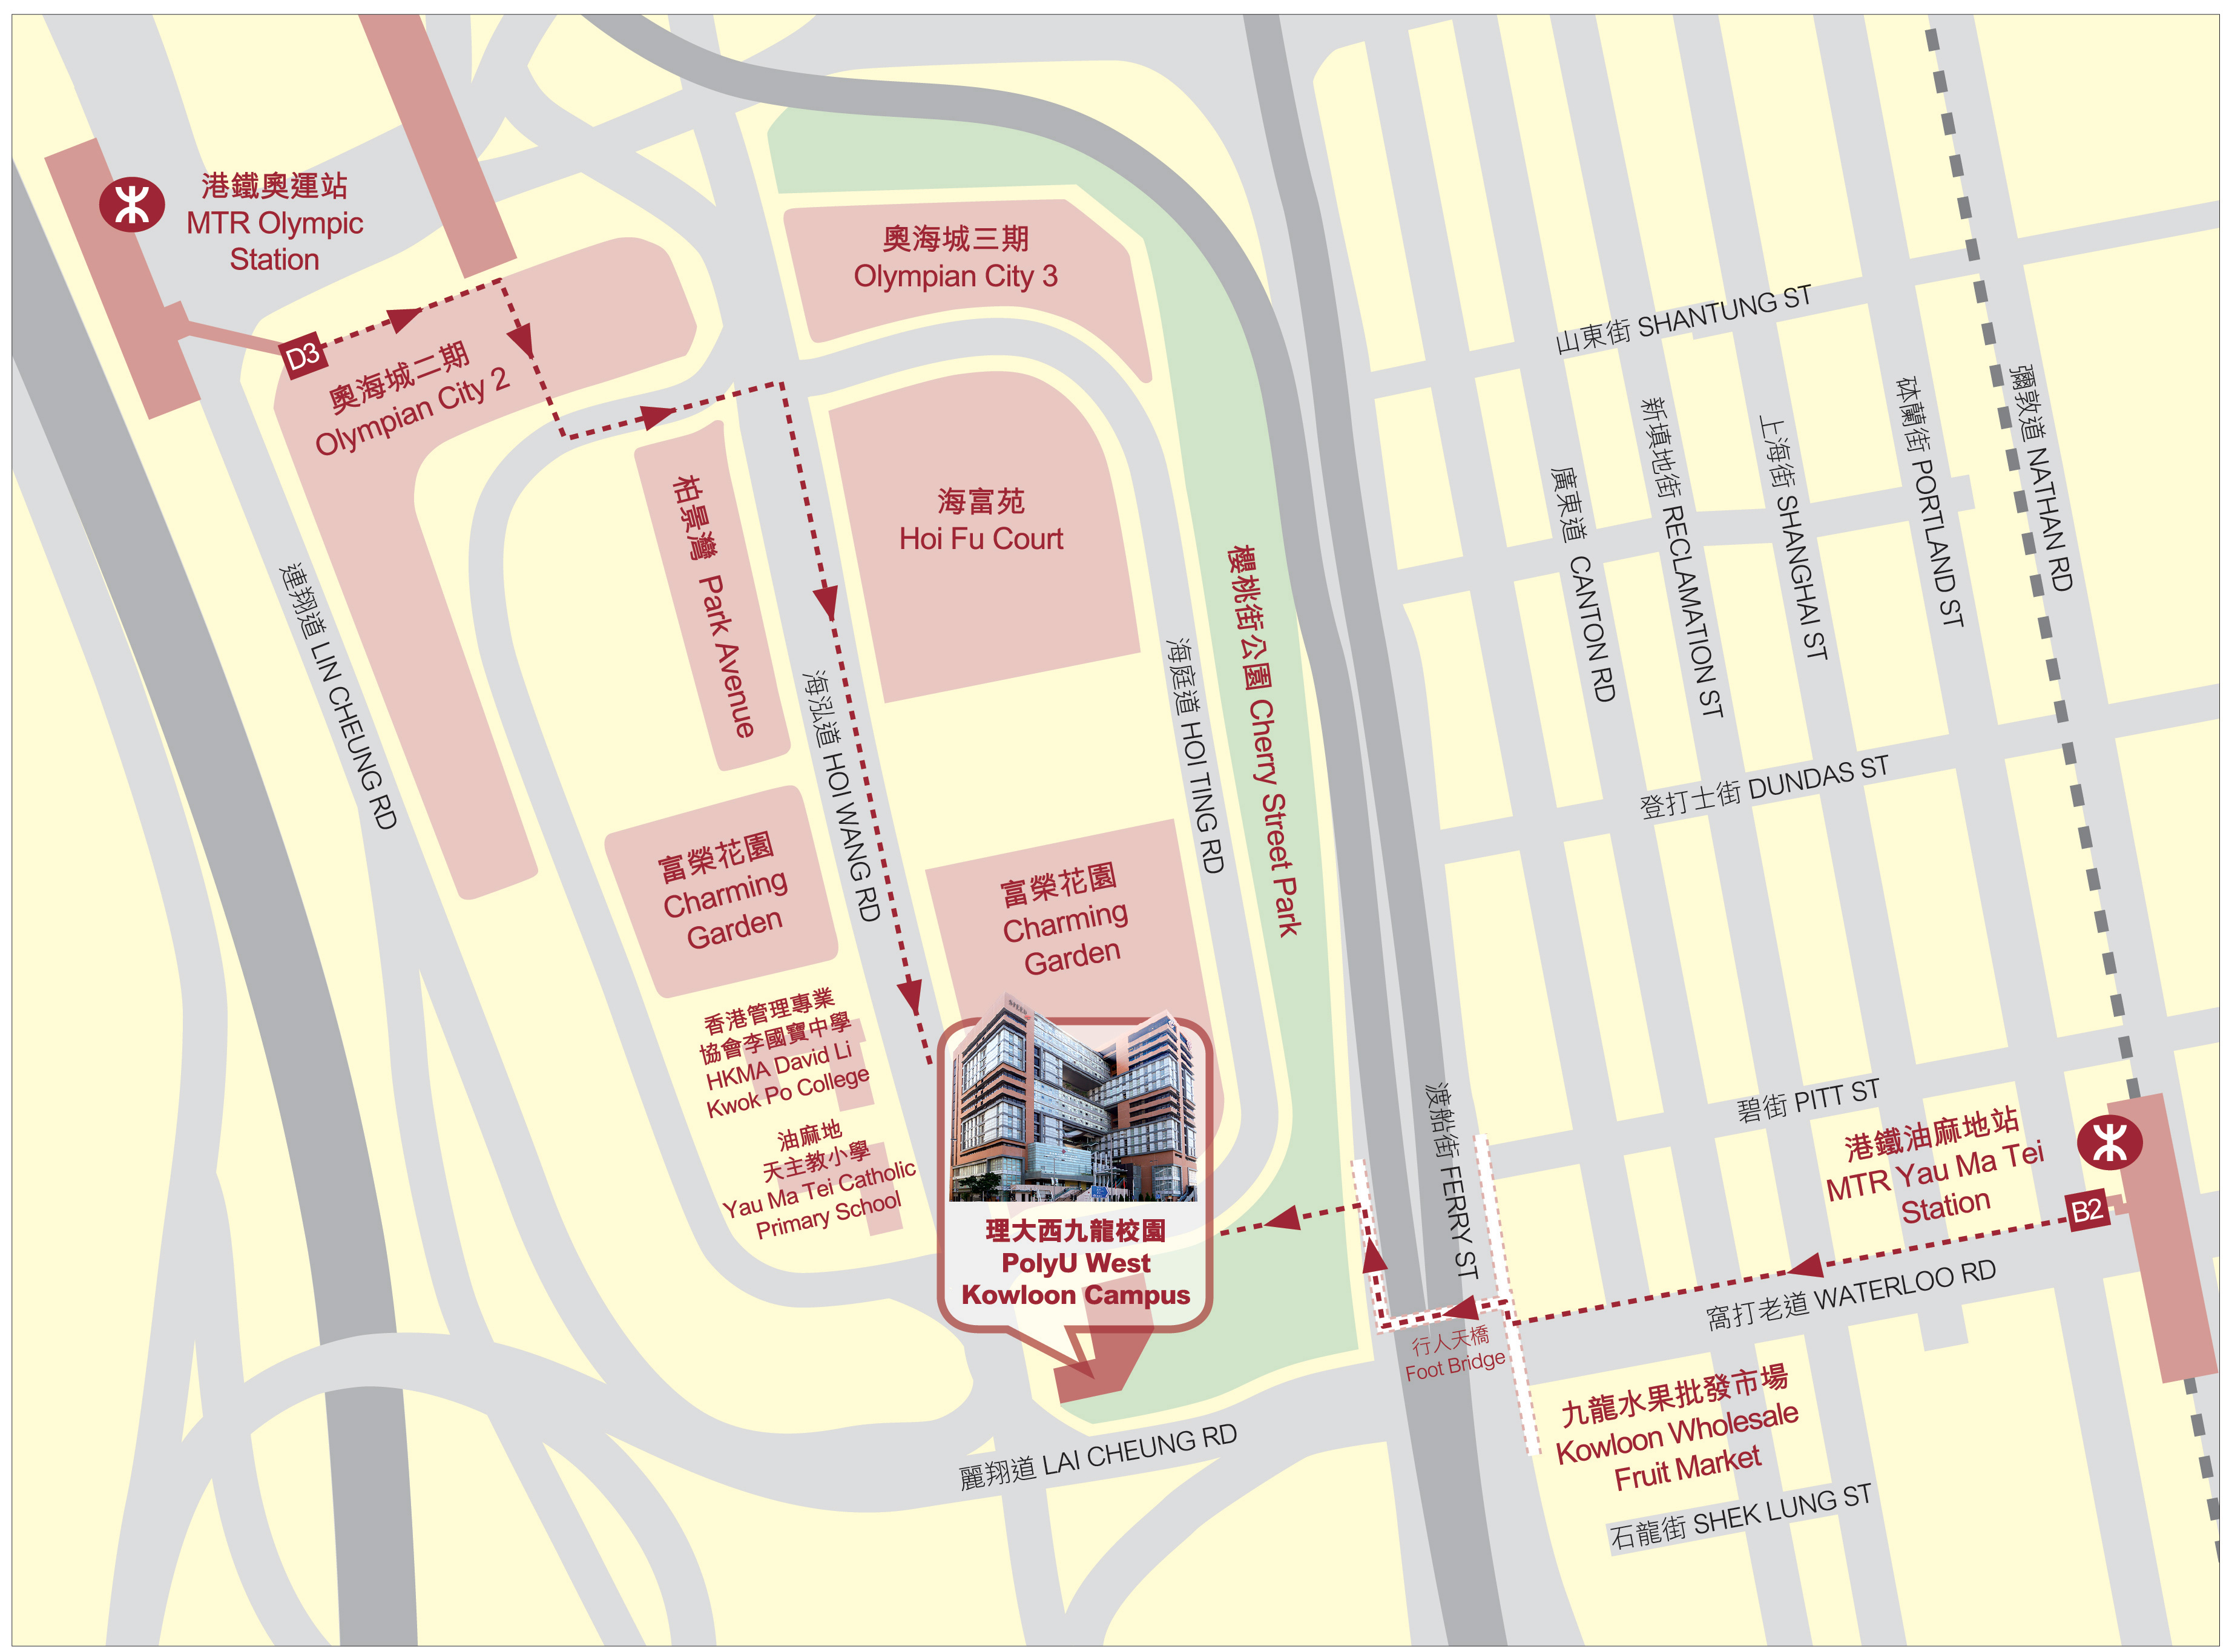 map_PolyU_West_Kowloon_Campus